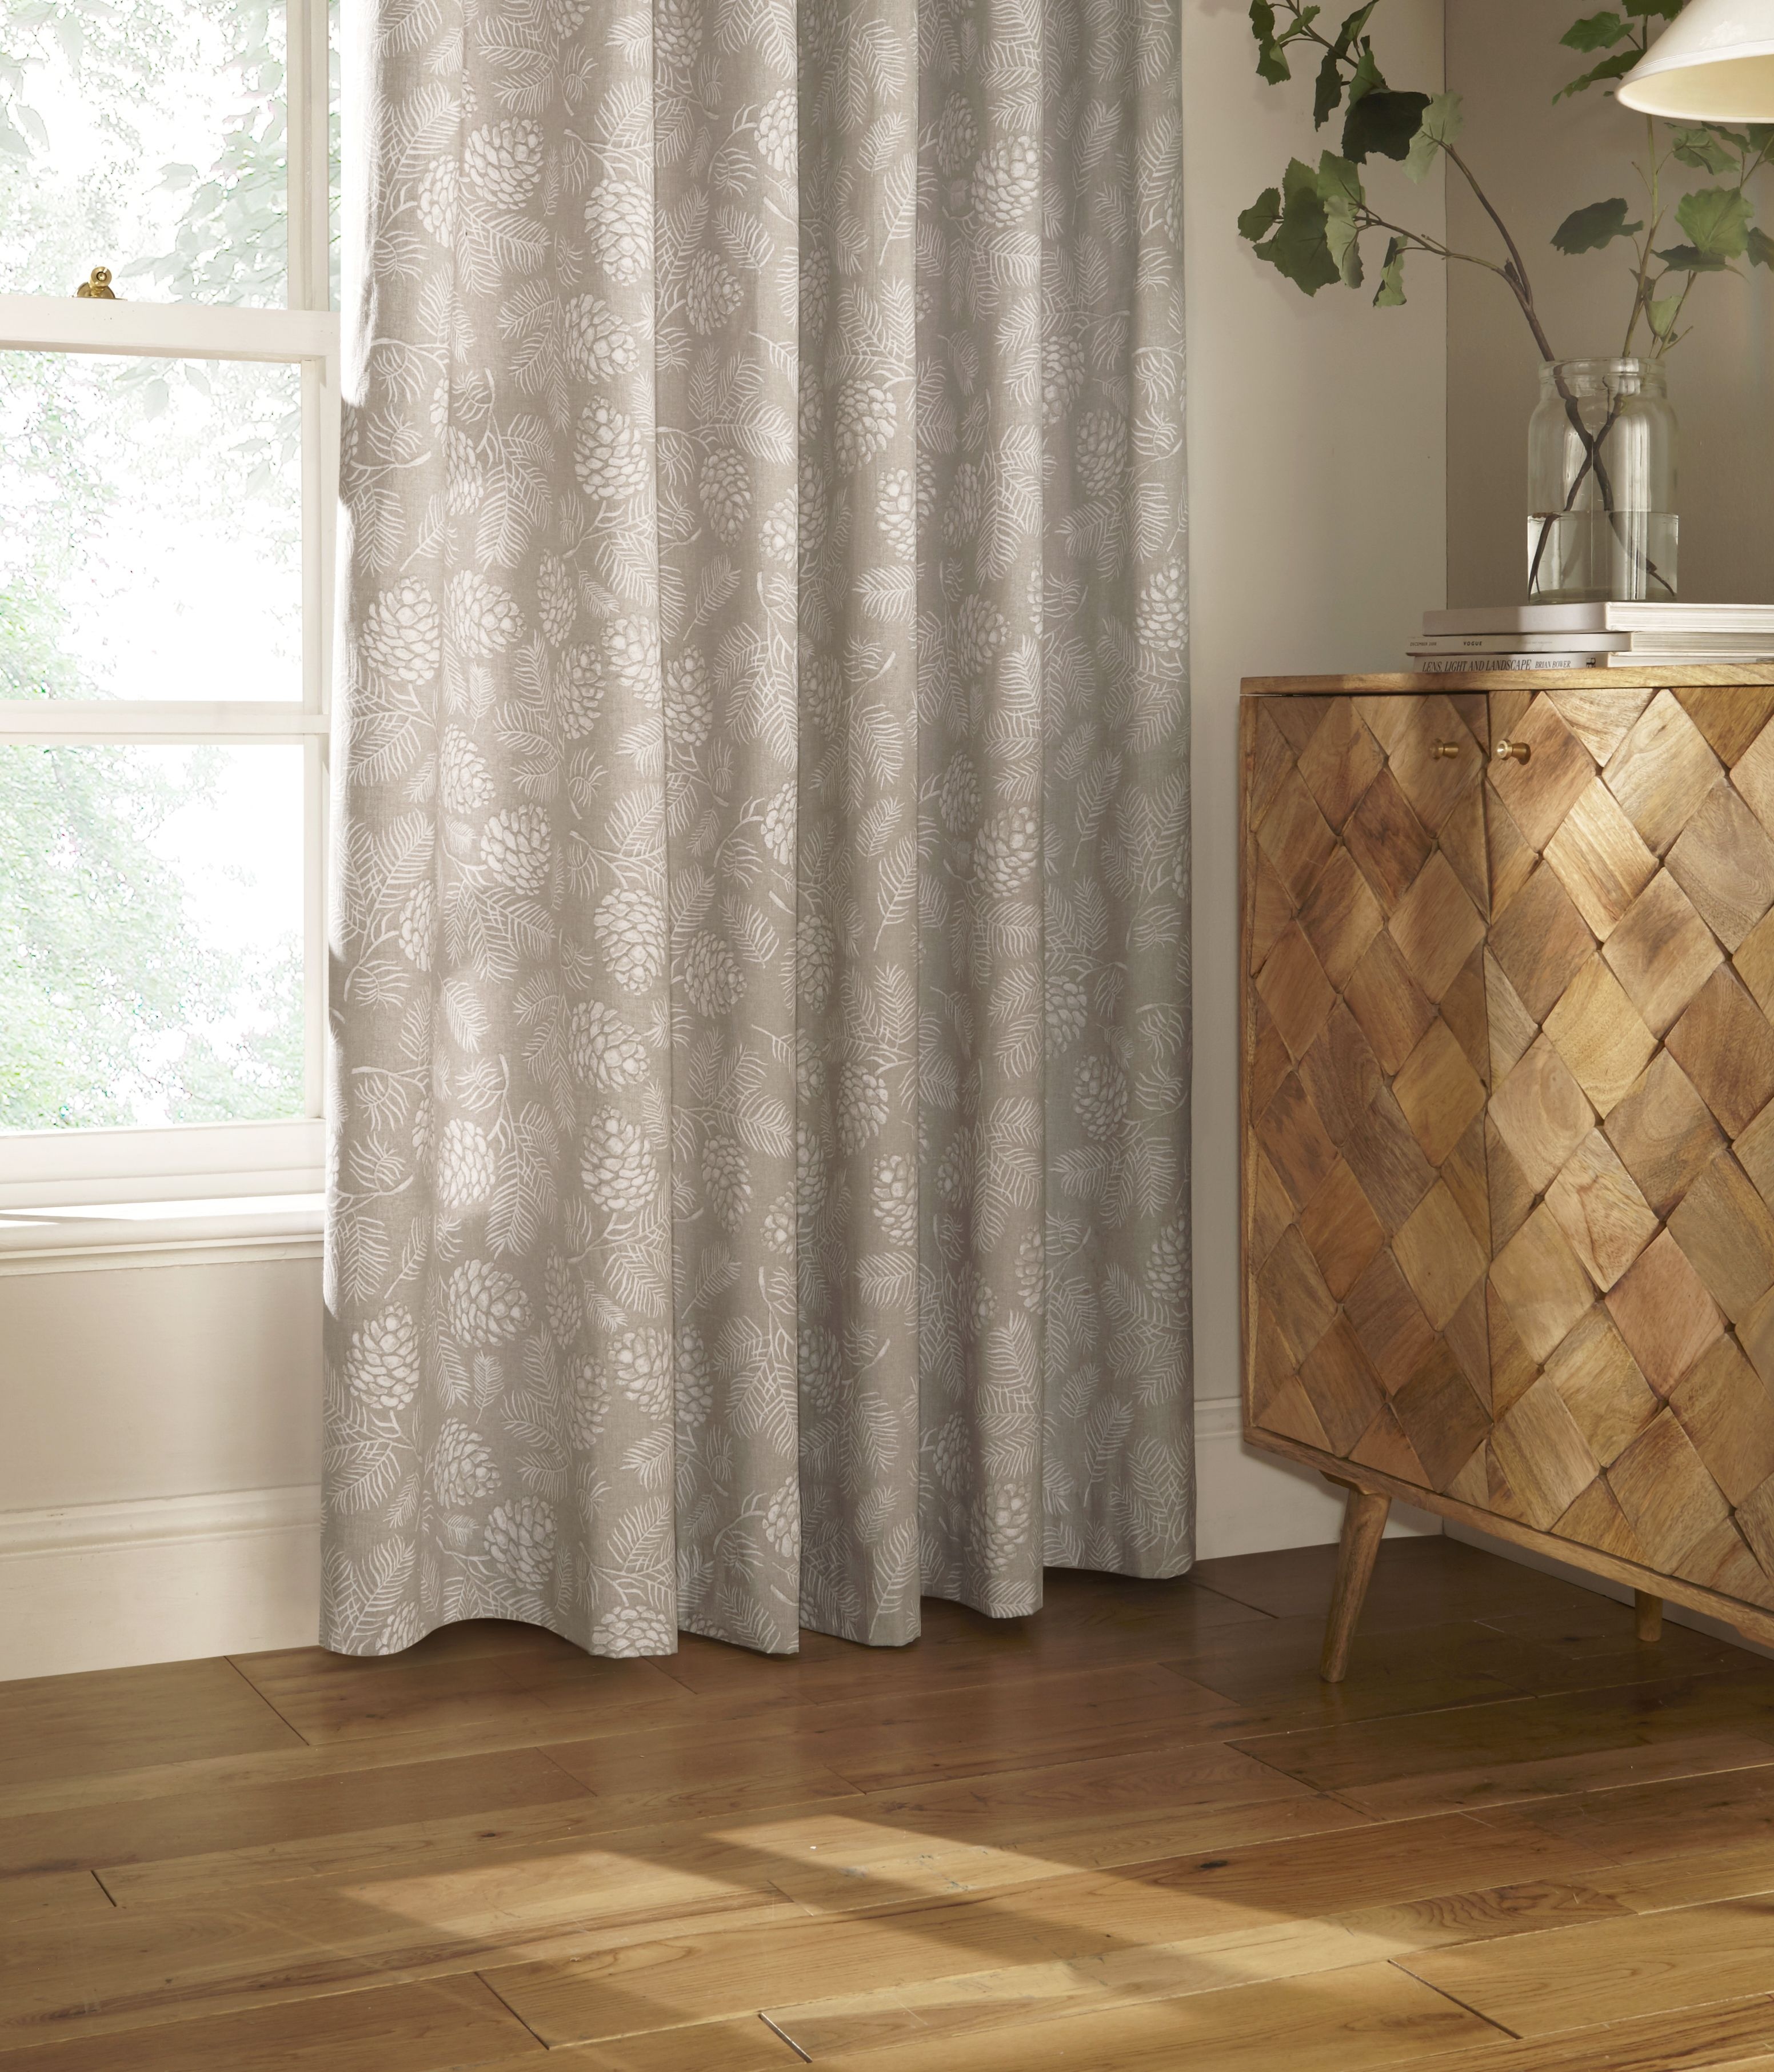 Irwin Printed Woodland Eyelet Curtains in Stone